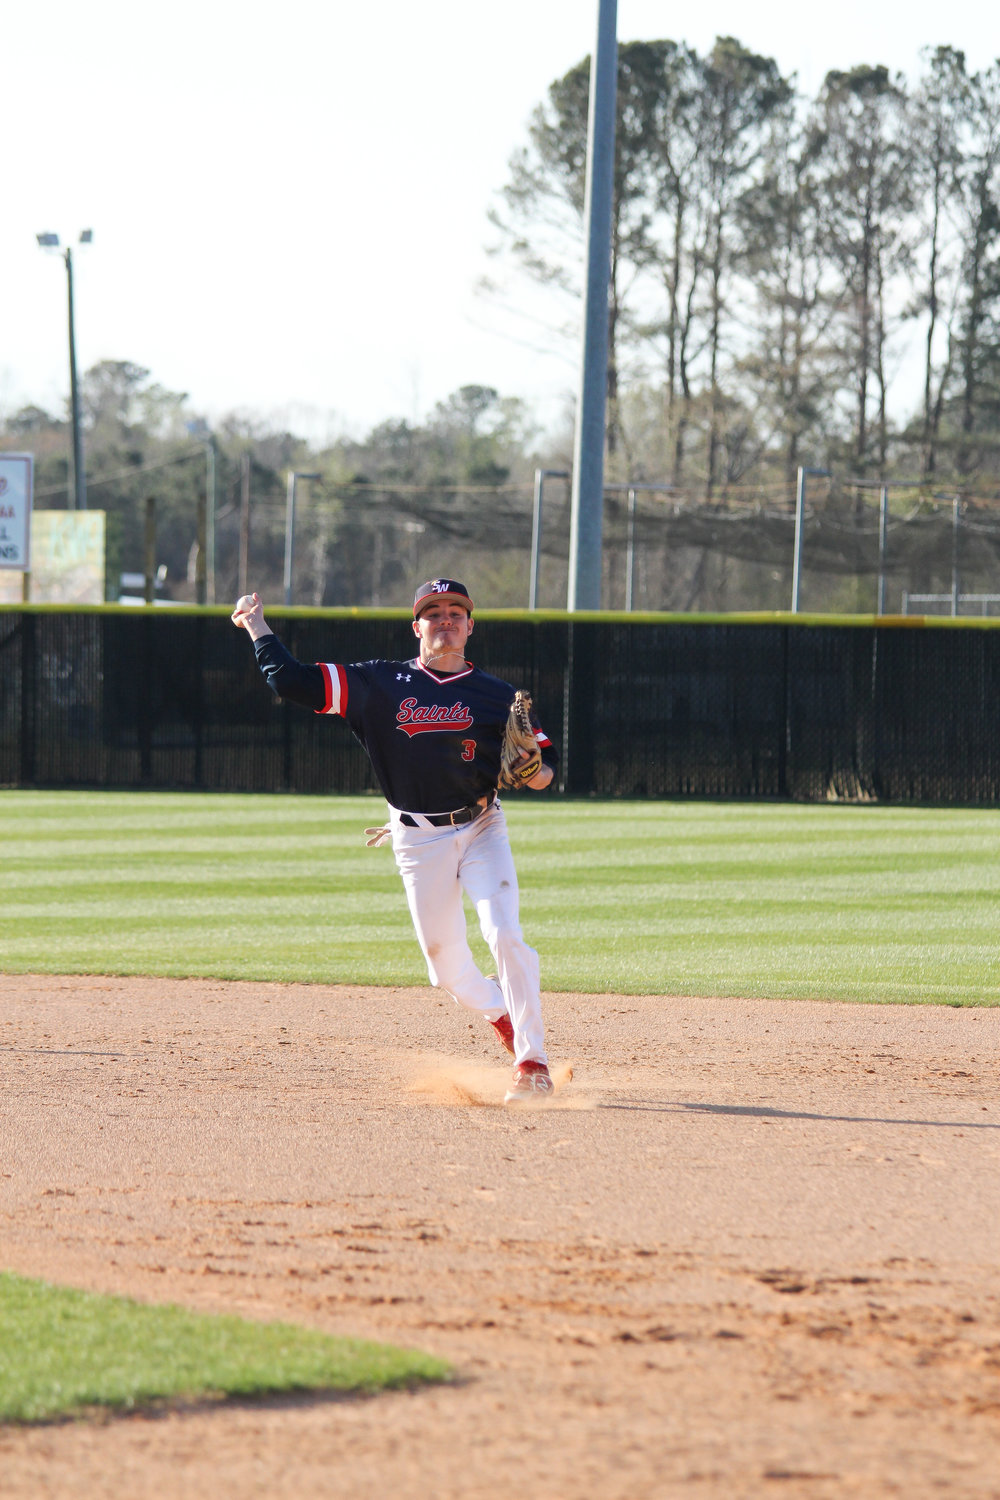 Senior Josh Raynor throwing to first for an easy out yesterday in the third inning.